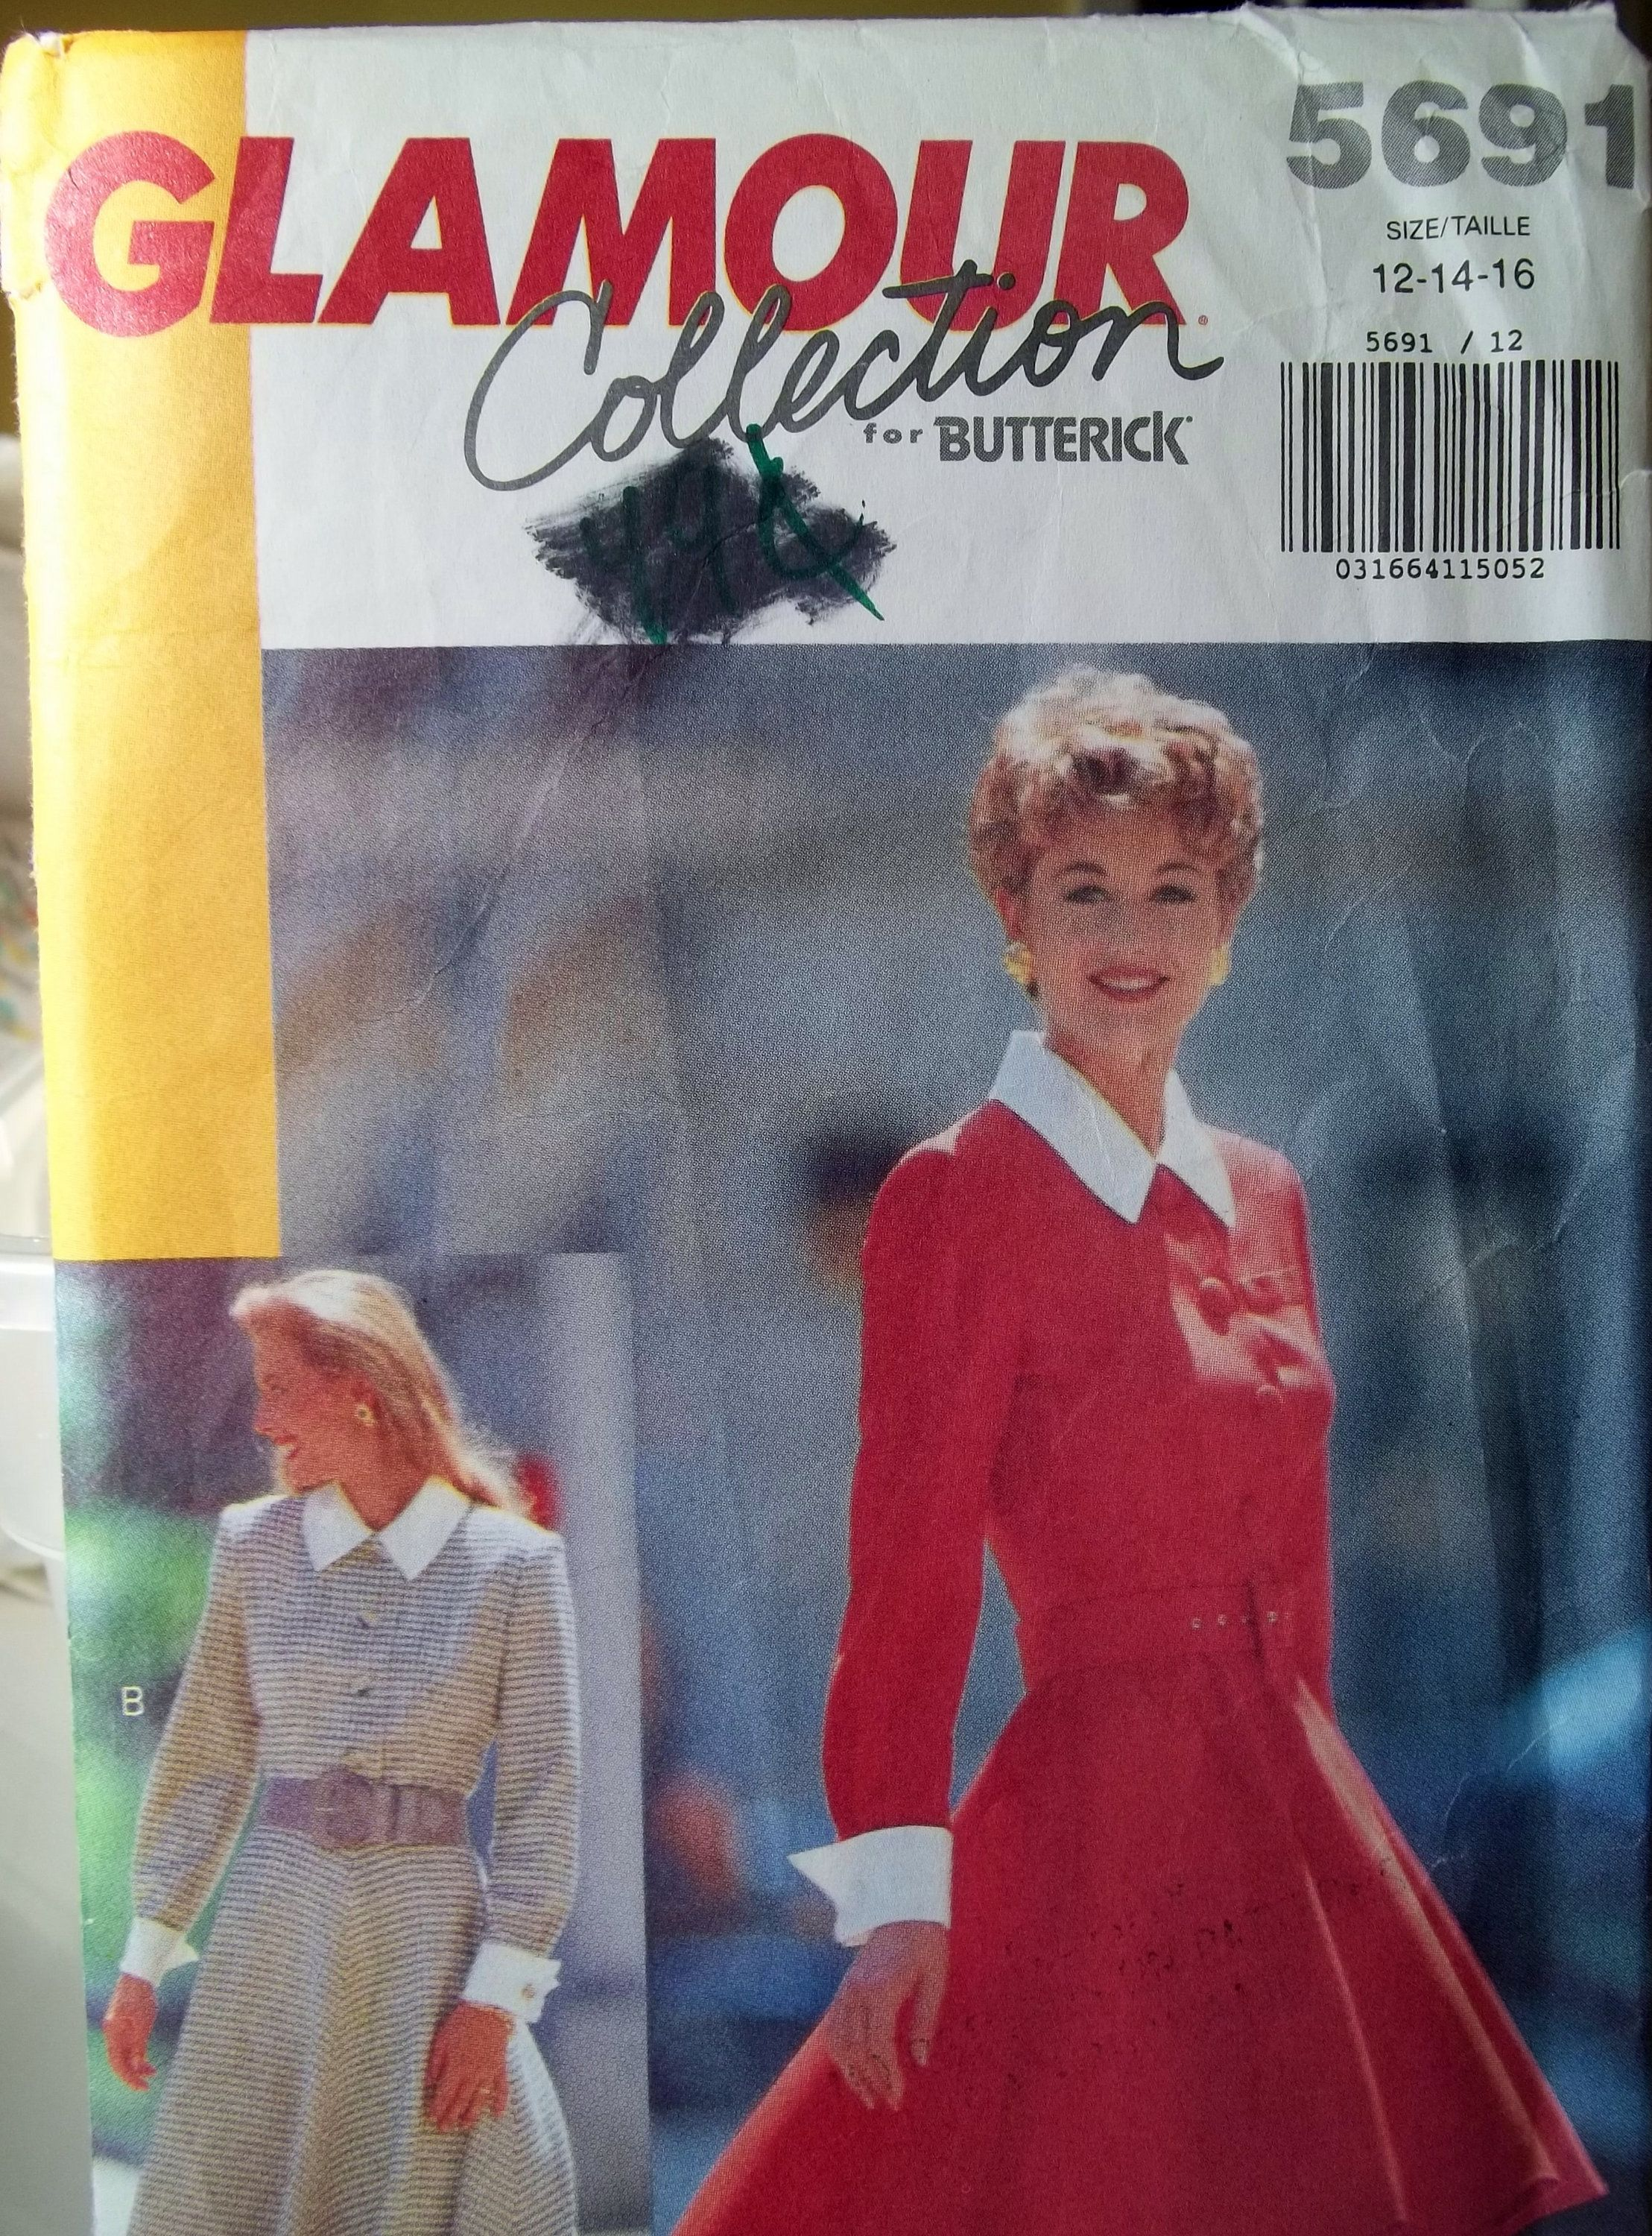 Misses' Fashion Dress Butterick 5691 Easy Sewing Pattern Collared Dress w/Flared Skirt, Back Zipper, French Button Cuffs  Size 12 - 16 UNCUT #flaredskirt